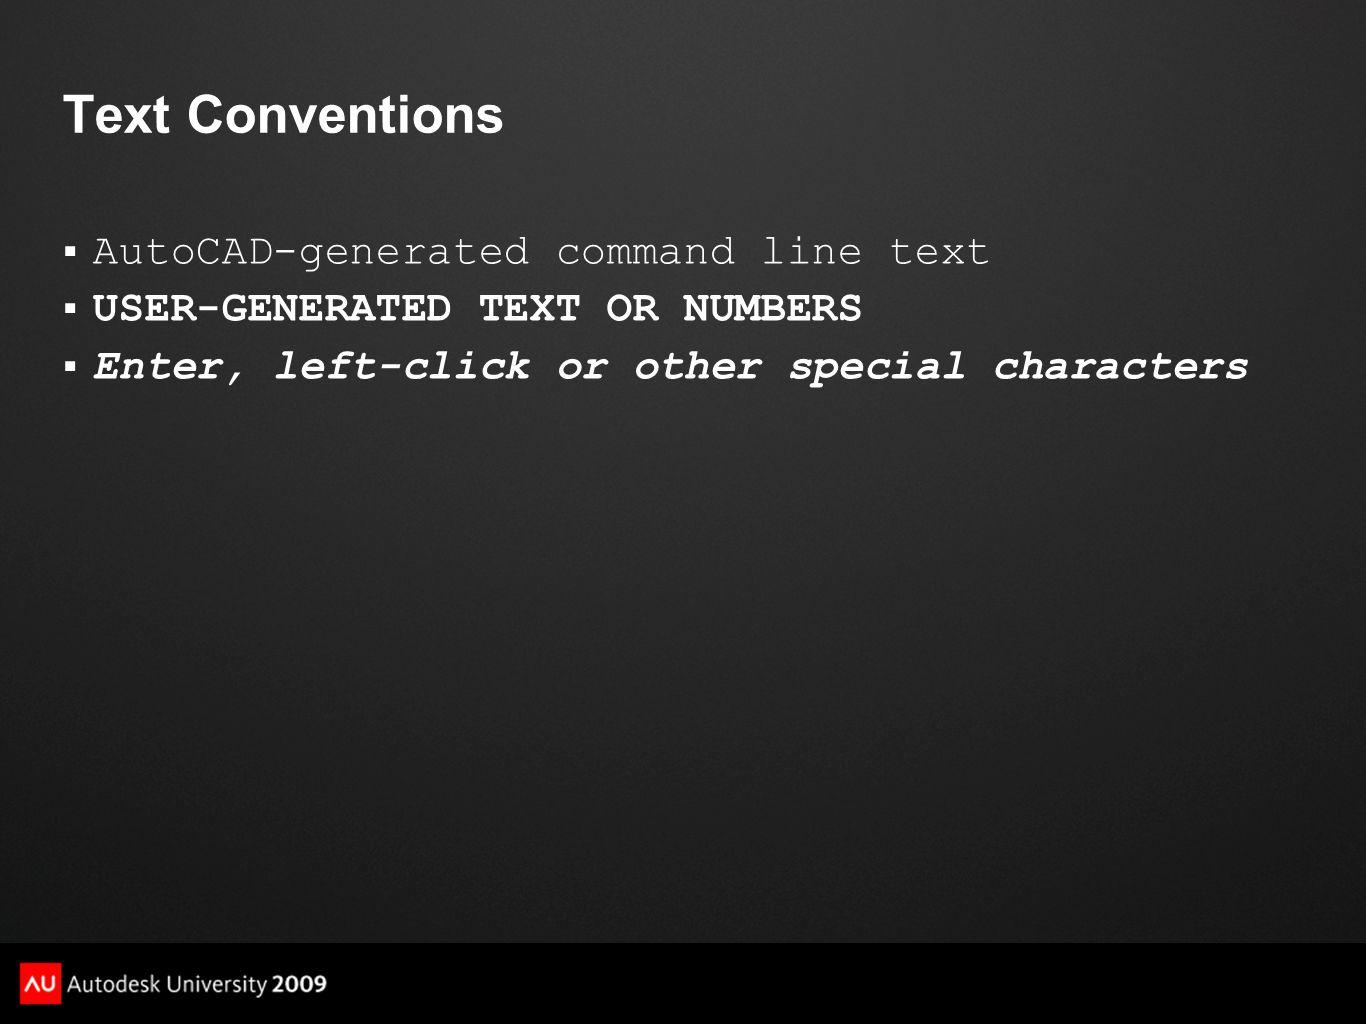 Text Conventions AutoCAD-generated command line text